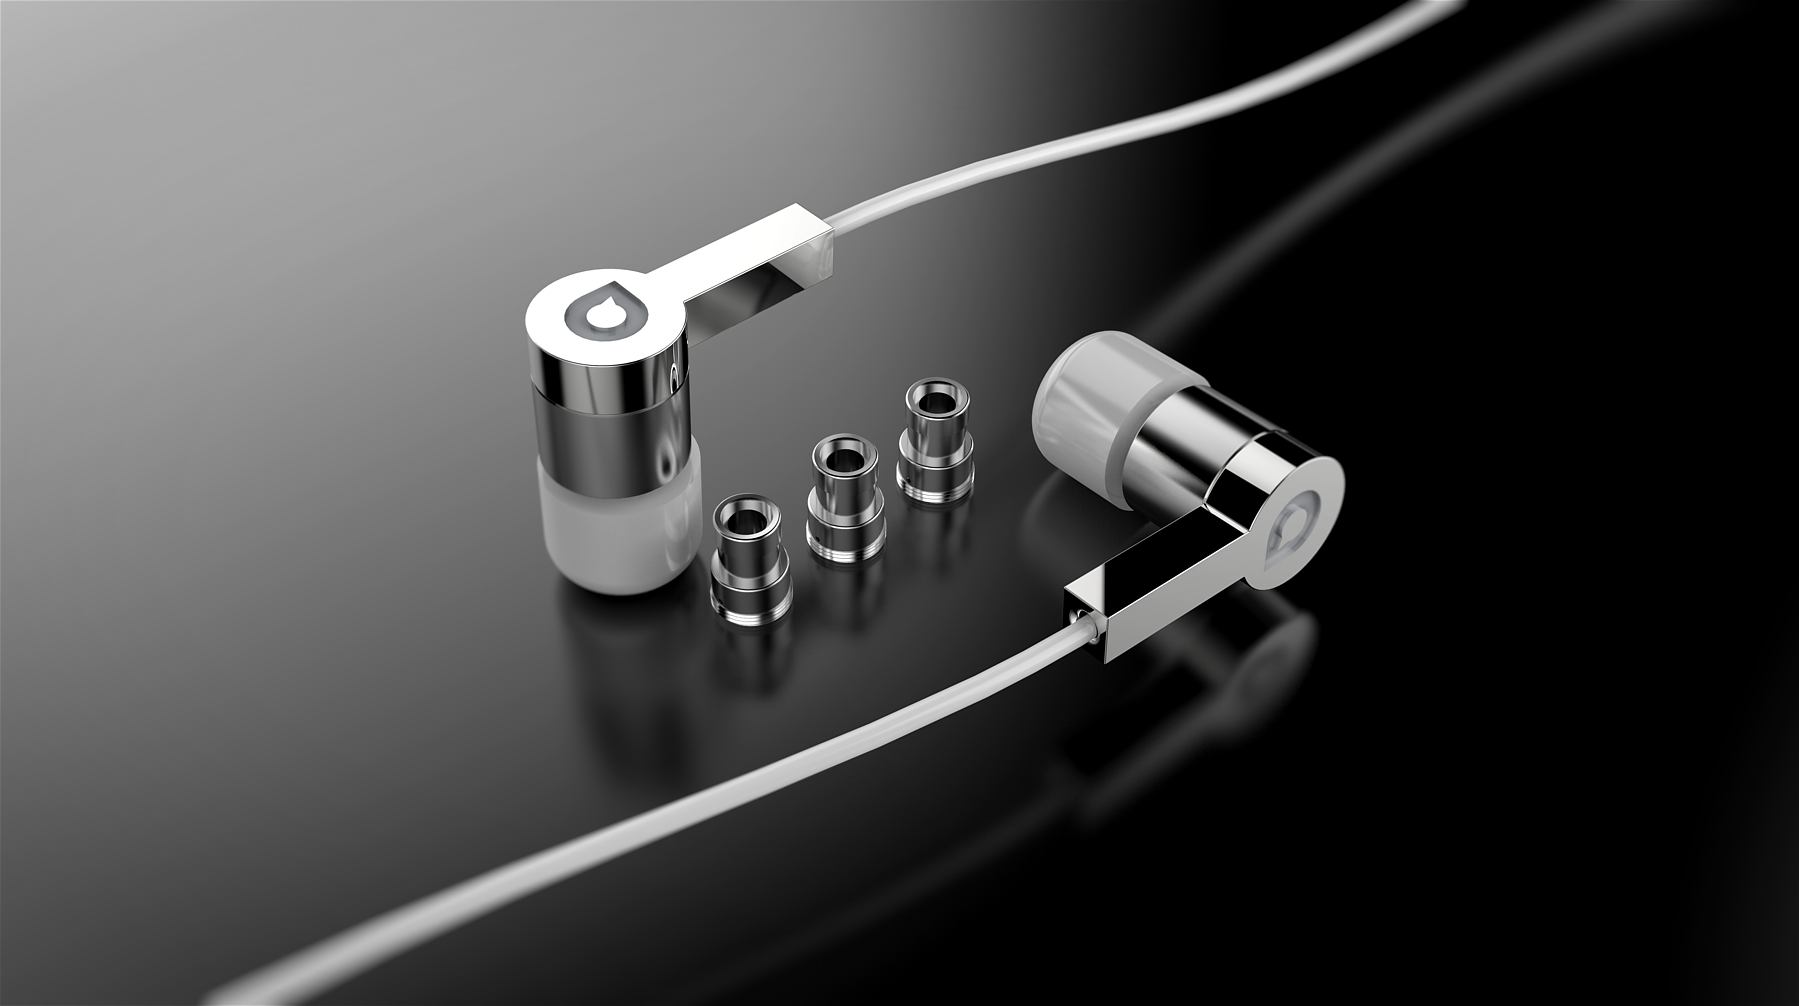 Gemini HD Audio Tuning Nozzle